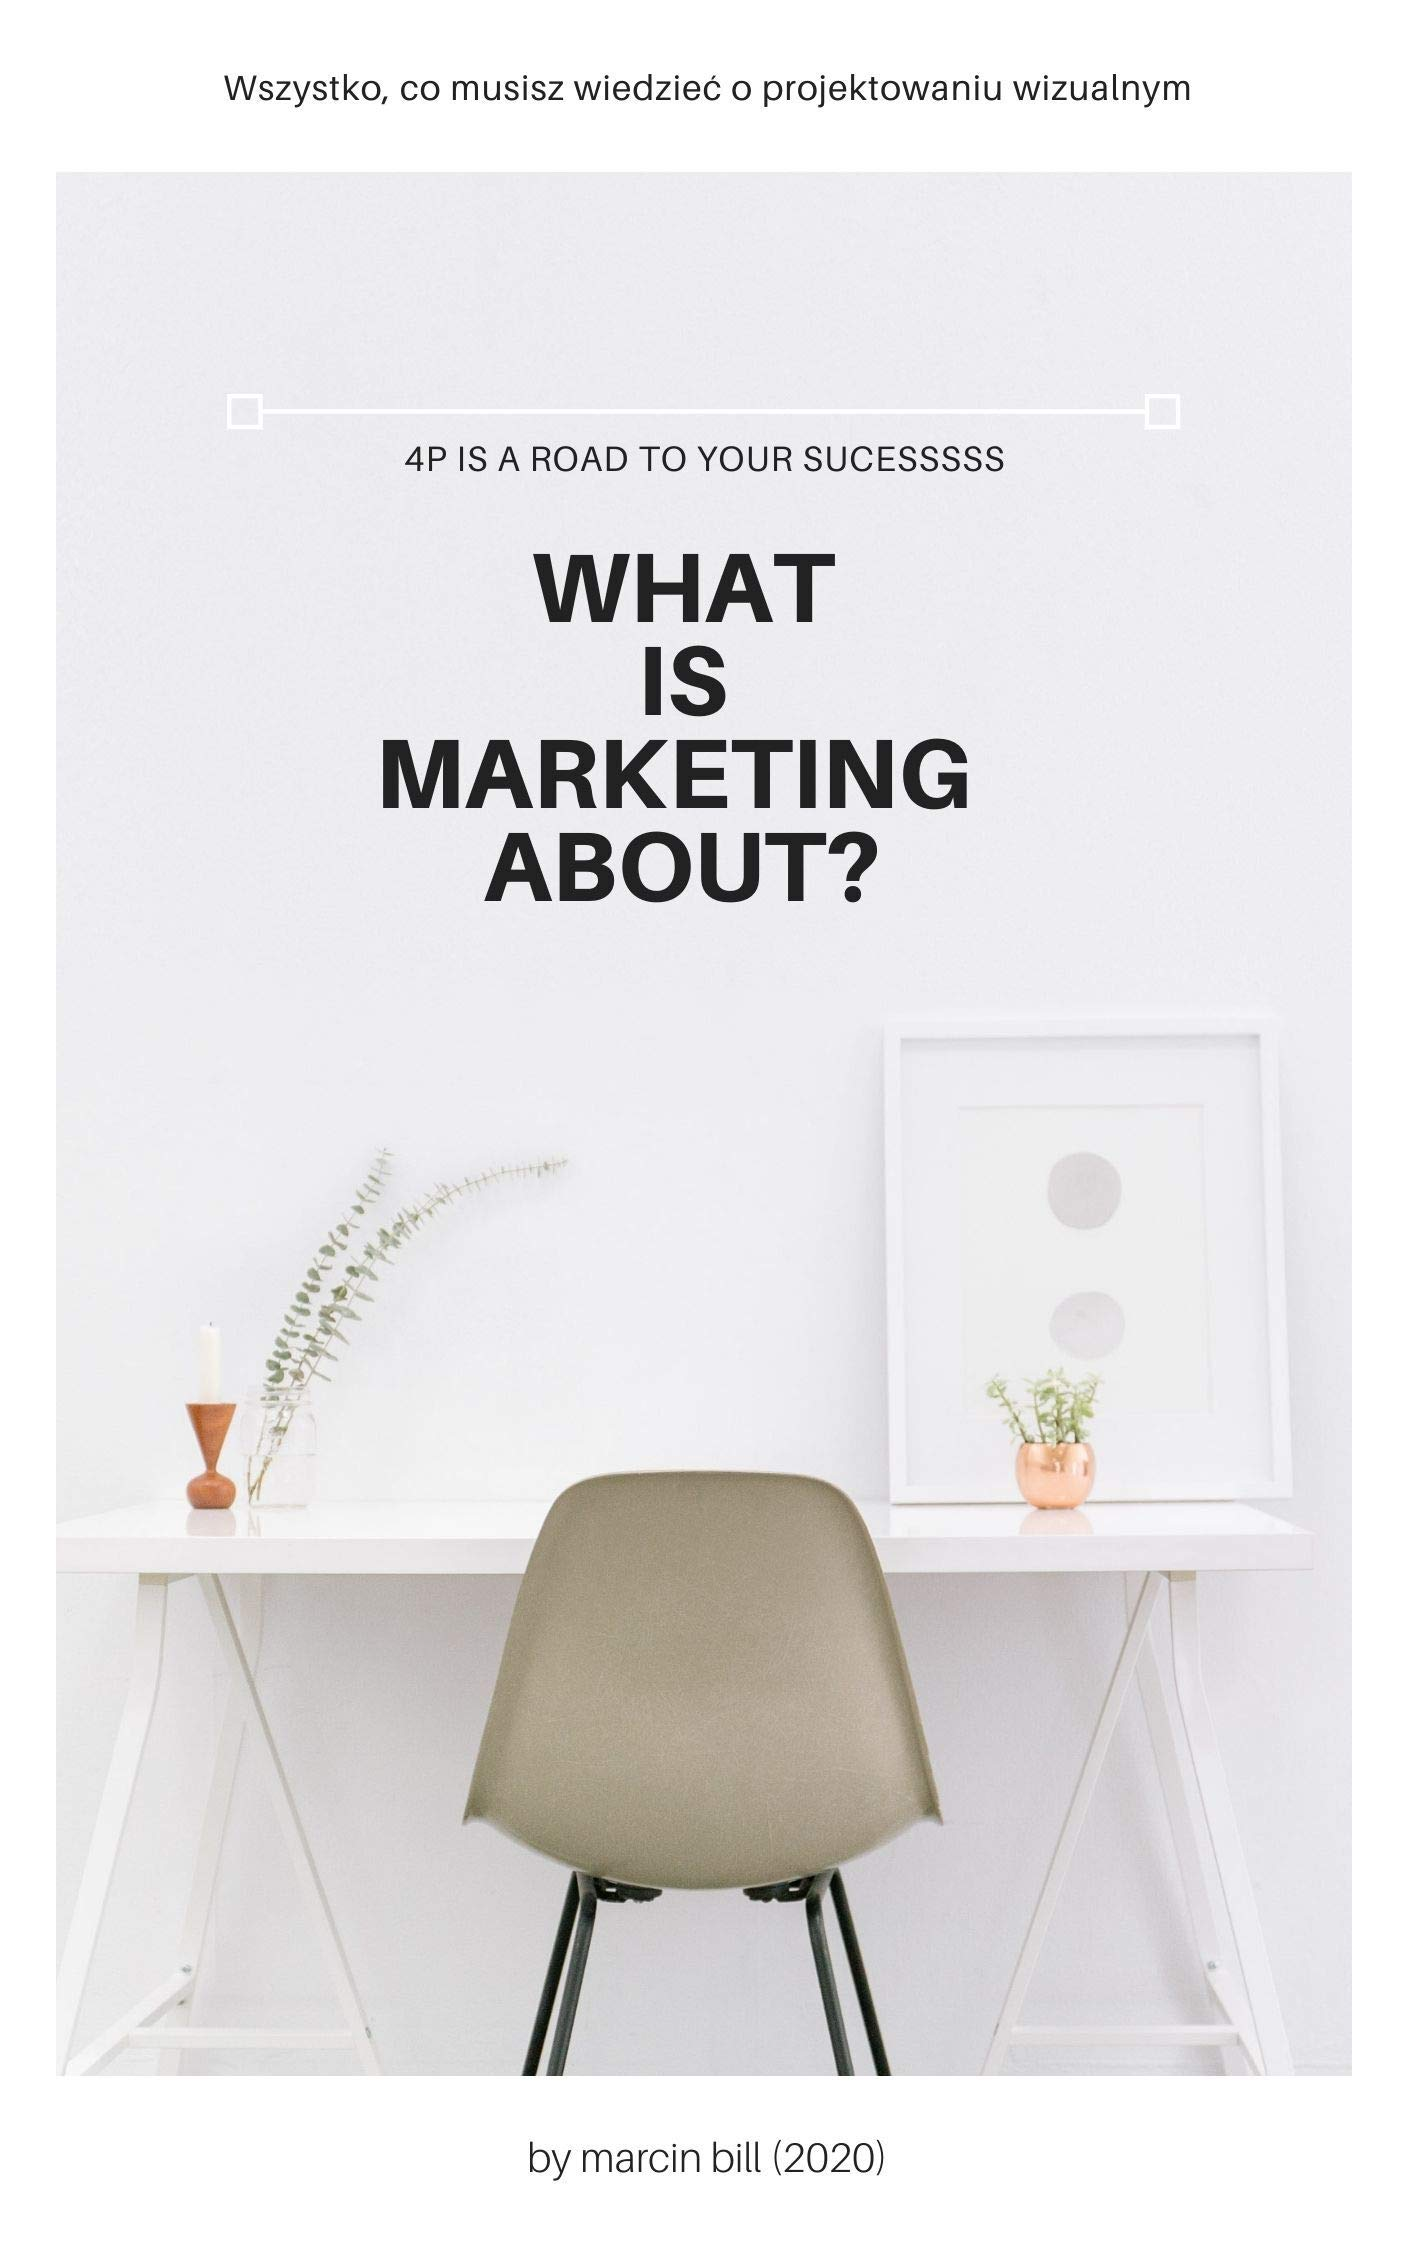 WHAT IS MARKETING ABOUT?